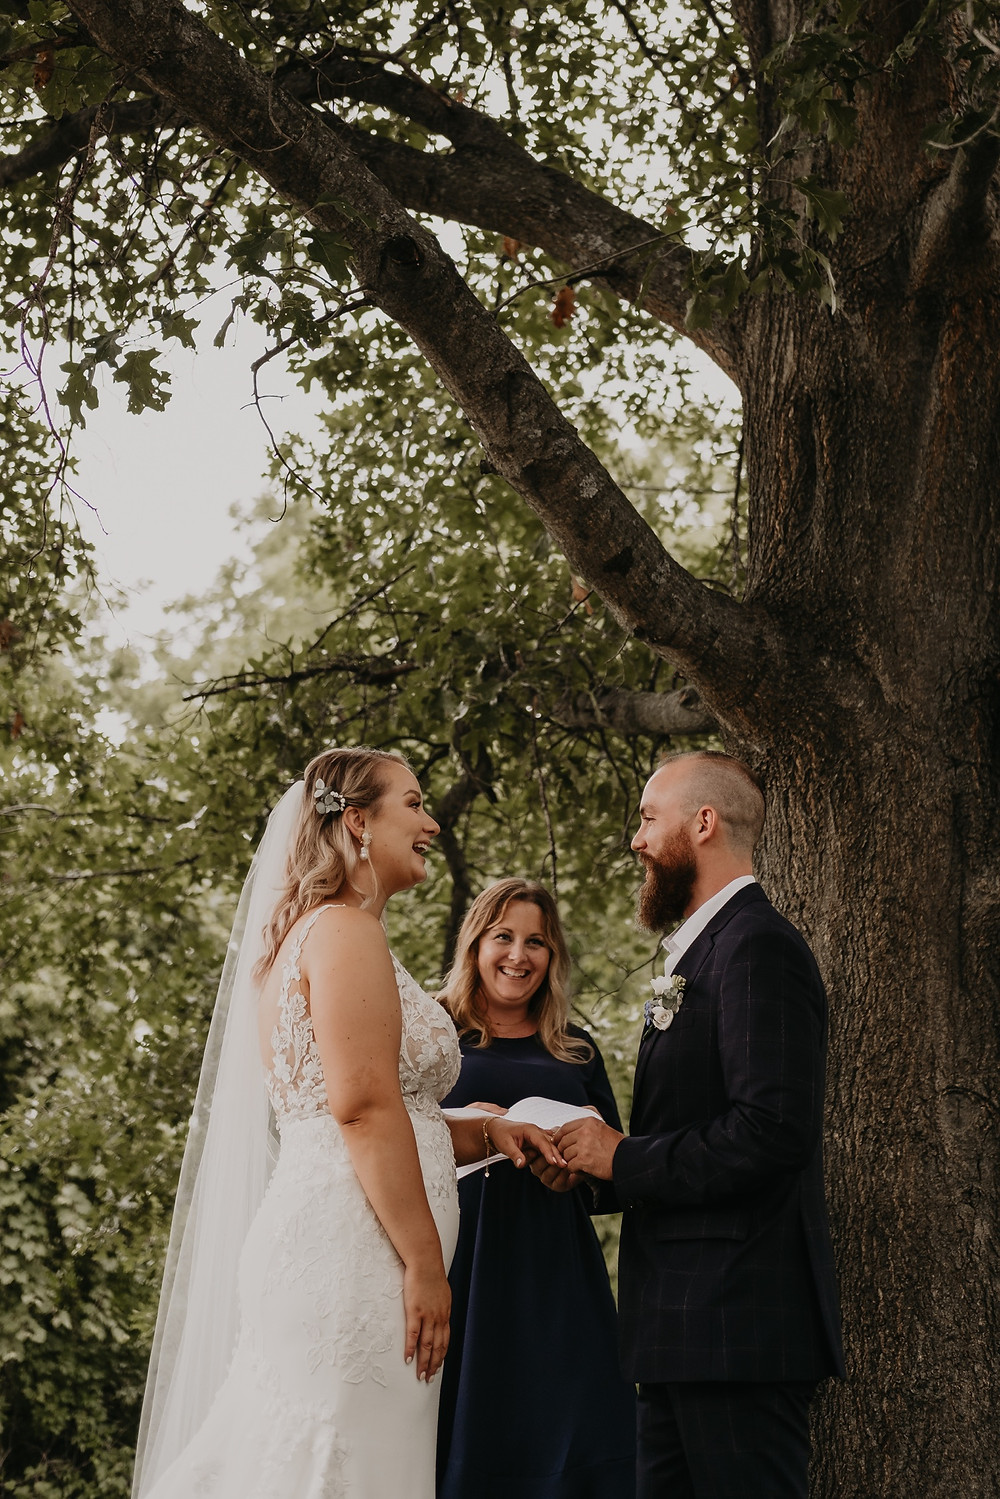 Metro Detroit wedding ceremony under a tree. Photographed by Nicole Leanne Photography.